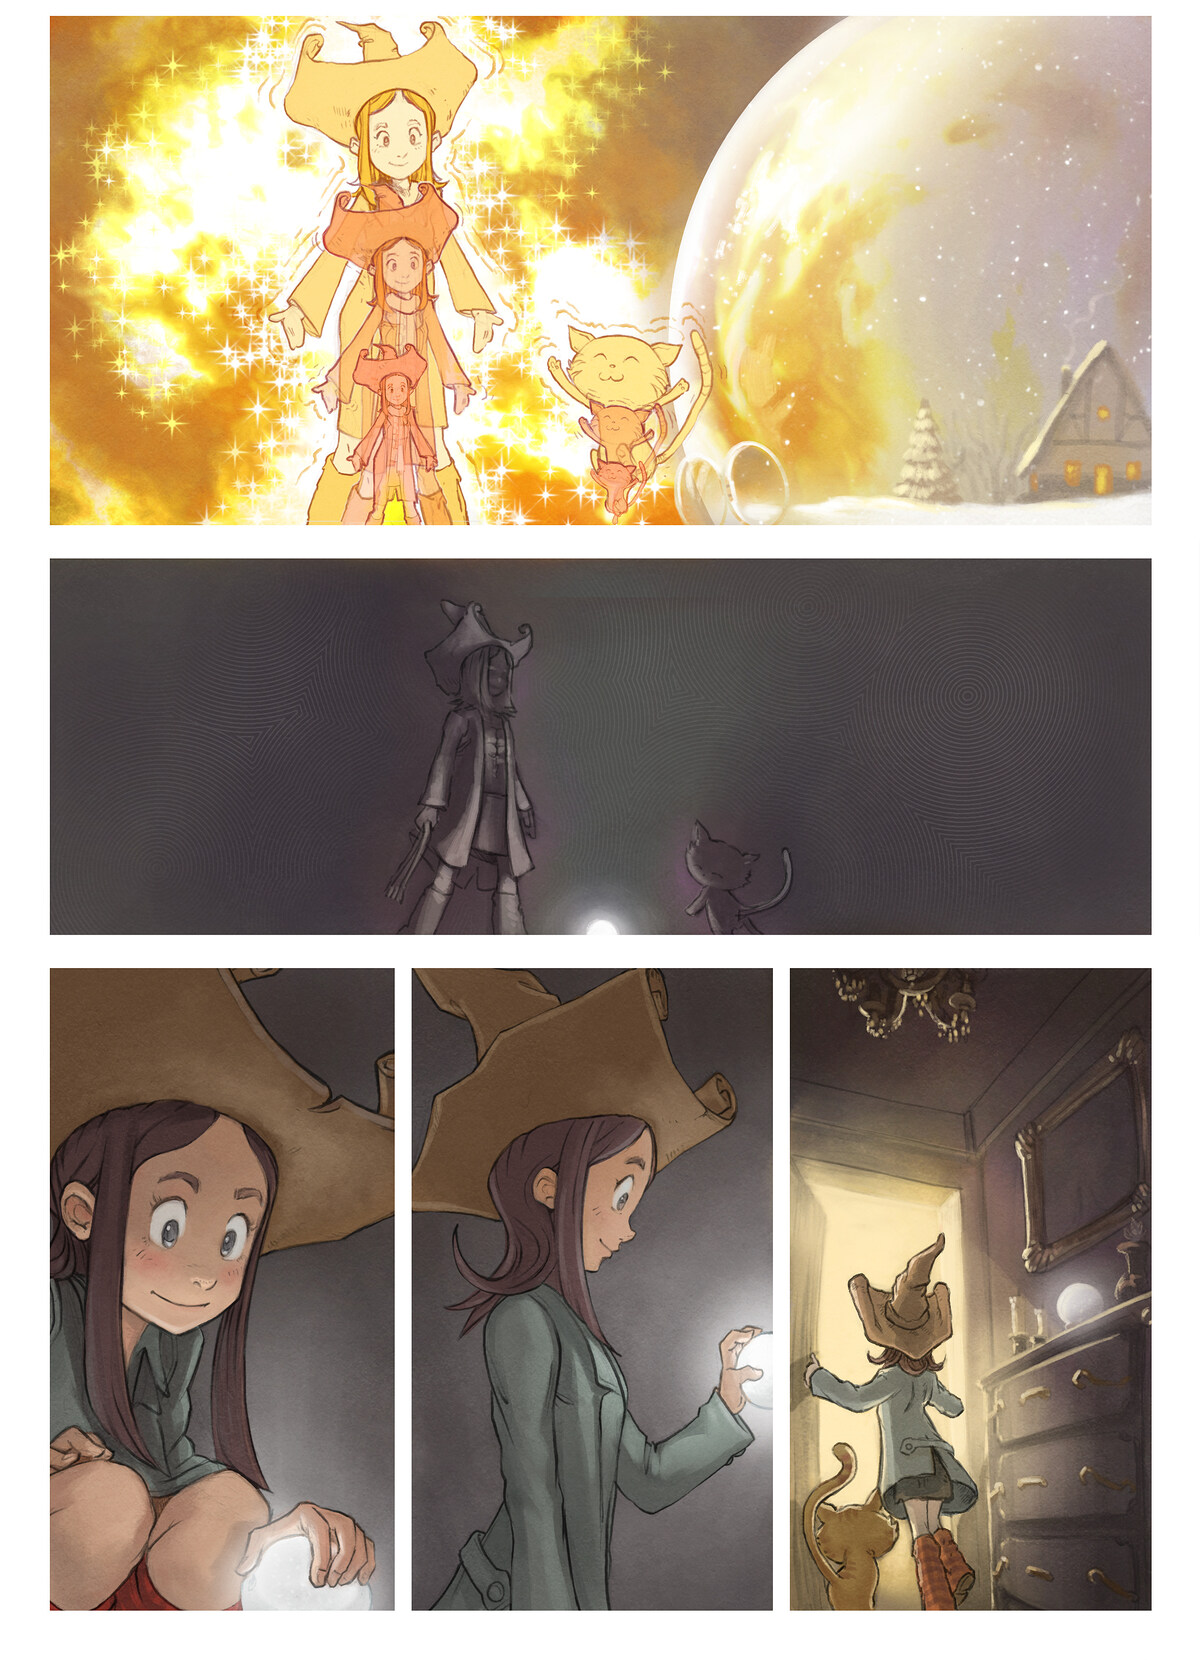 A webcomic page of Pepper&Carrot, episode 5 [la], page 3